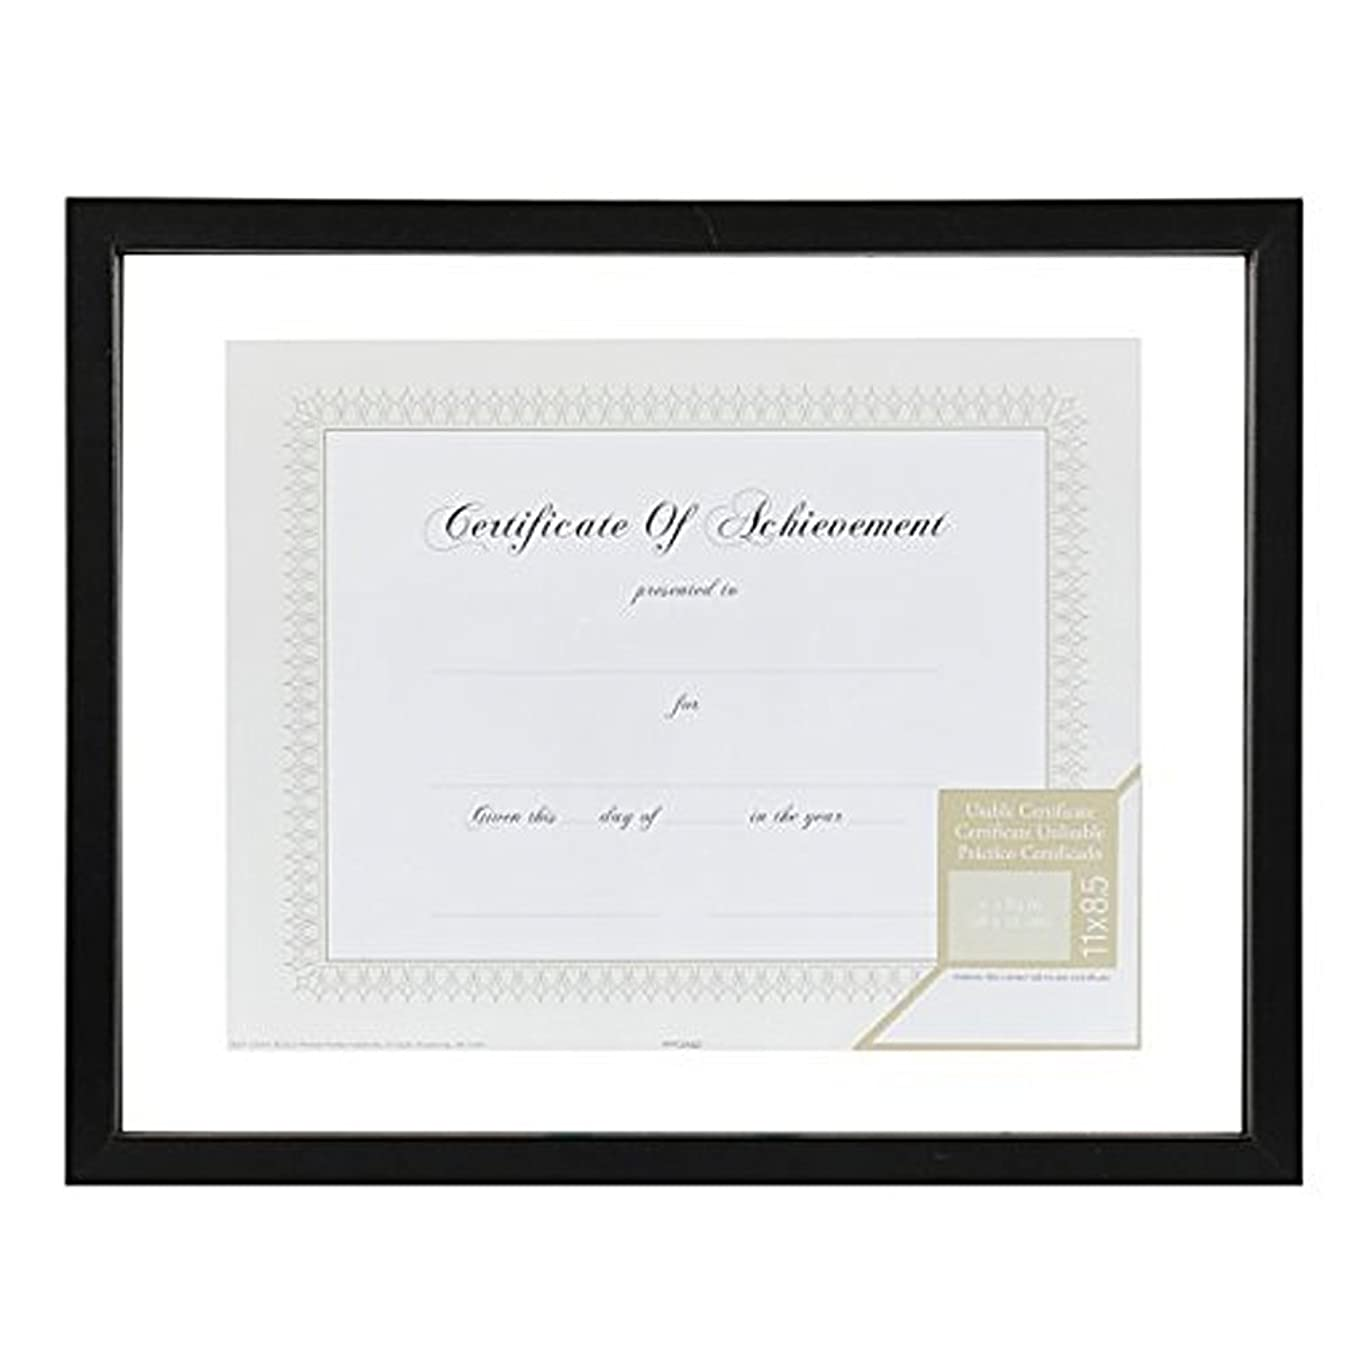 Gallery Solutions 11x14 Document Frame for Floating Display of 8.5x11 Document or Image, Black